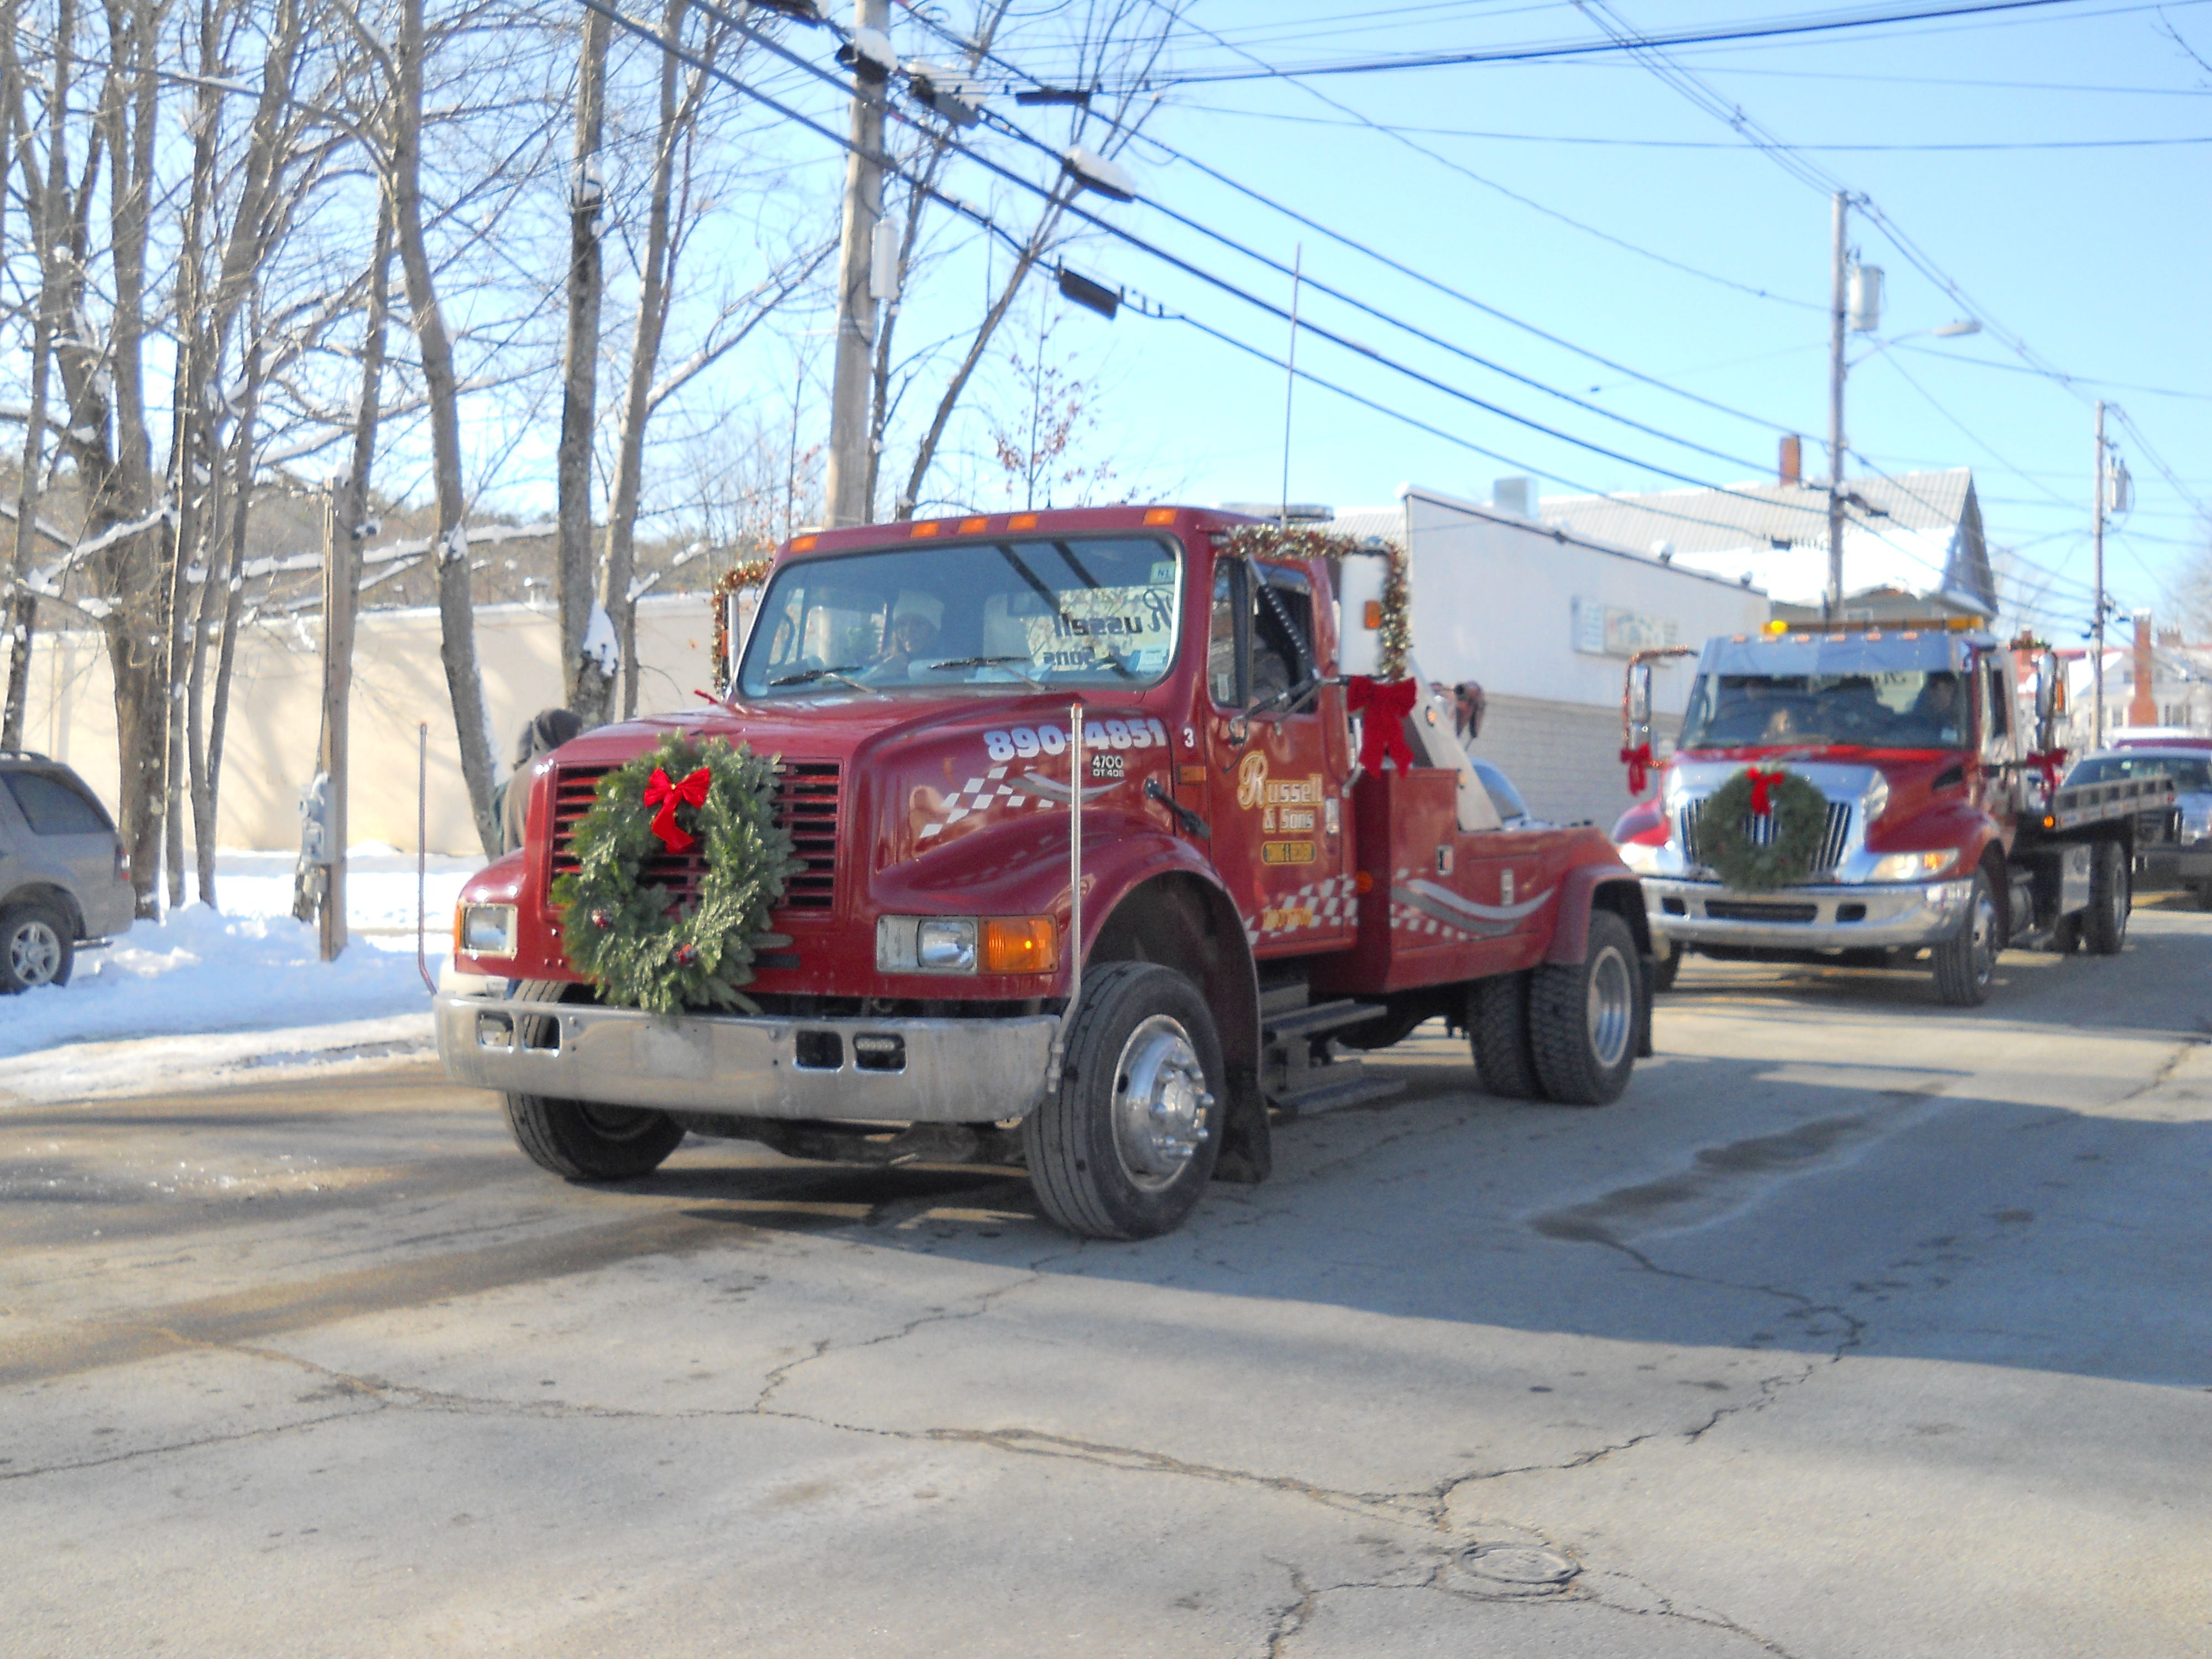 christmas decorated tow truck in christmas parade - Christmas Car Parade Decorations